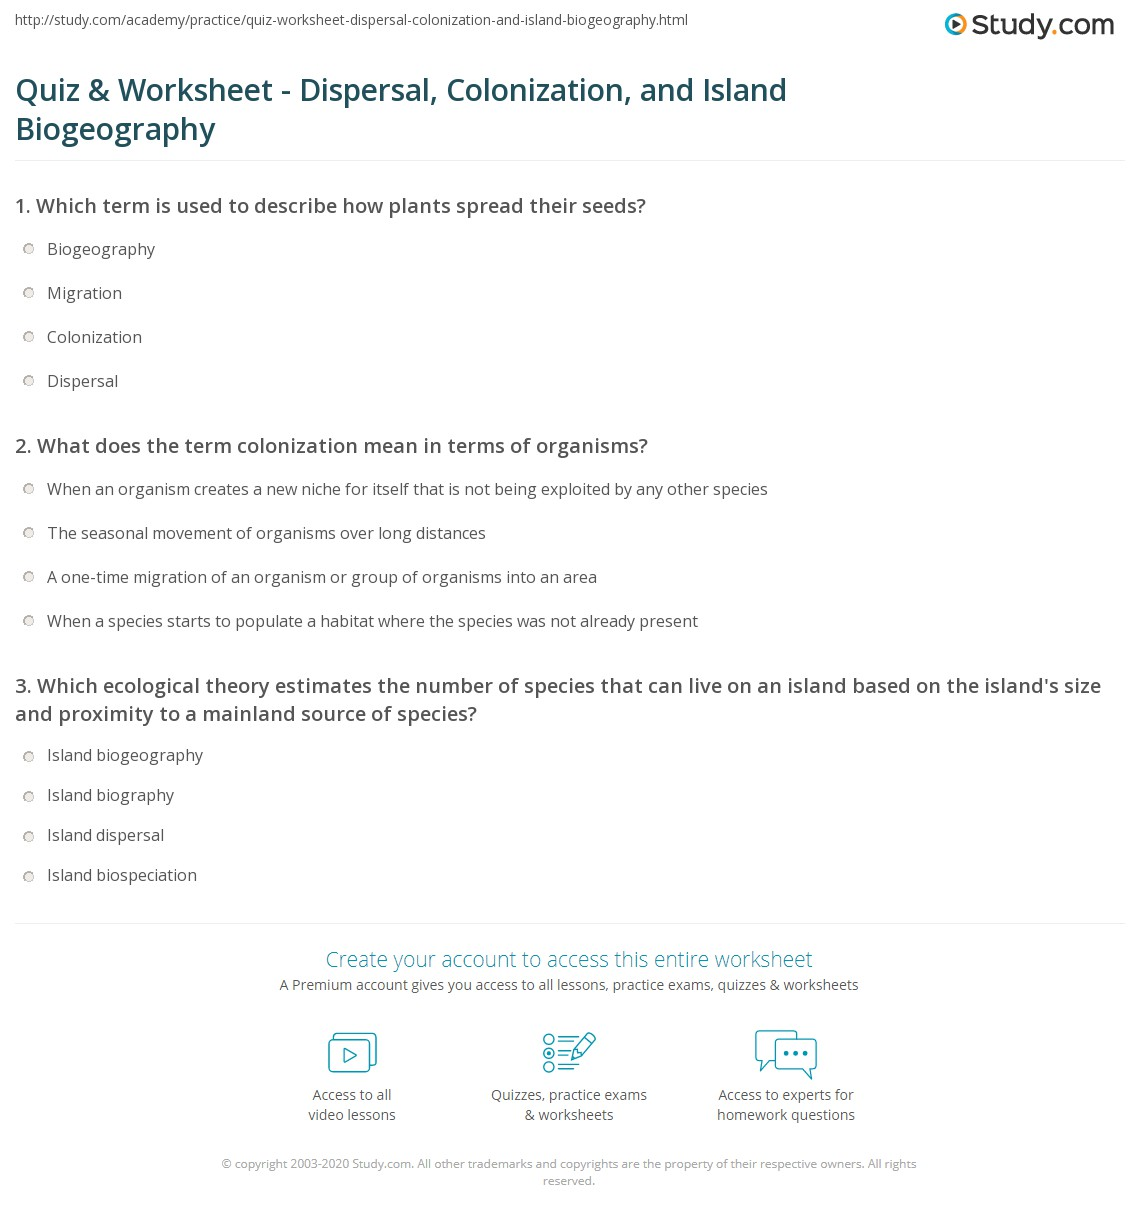 quiz worksheet dispersal colonization and island biogeography. Black Bedroom Furniture Sets. Home Design Ideas